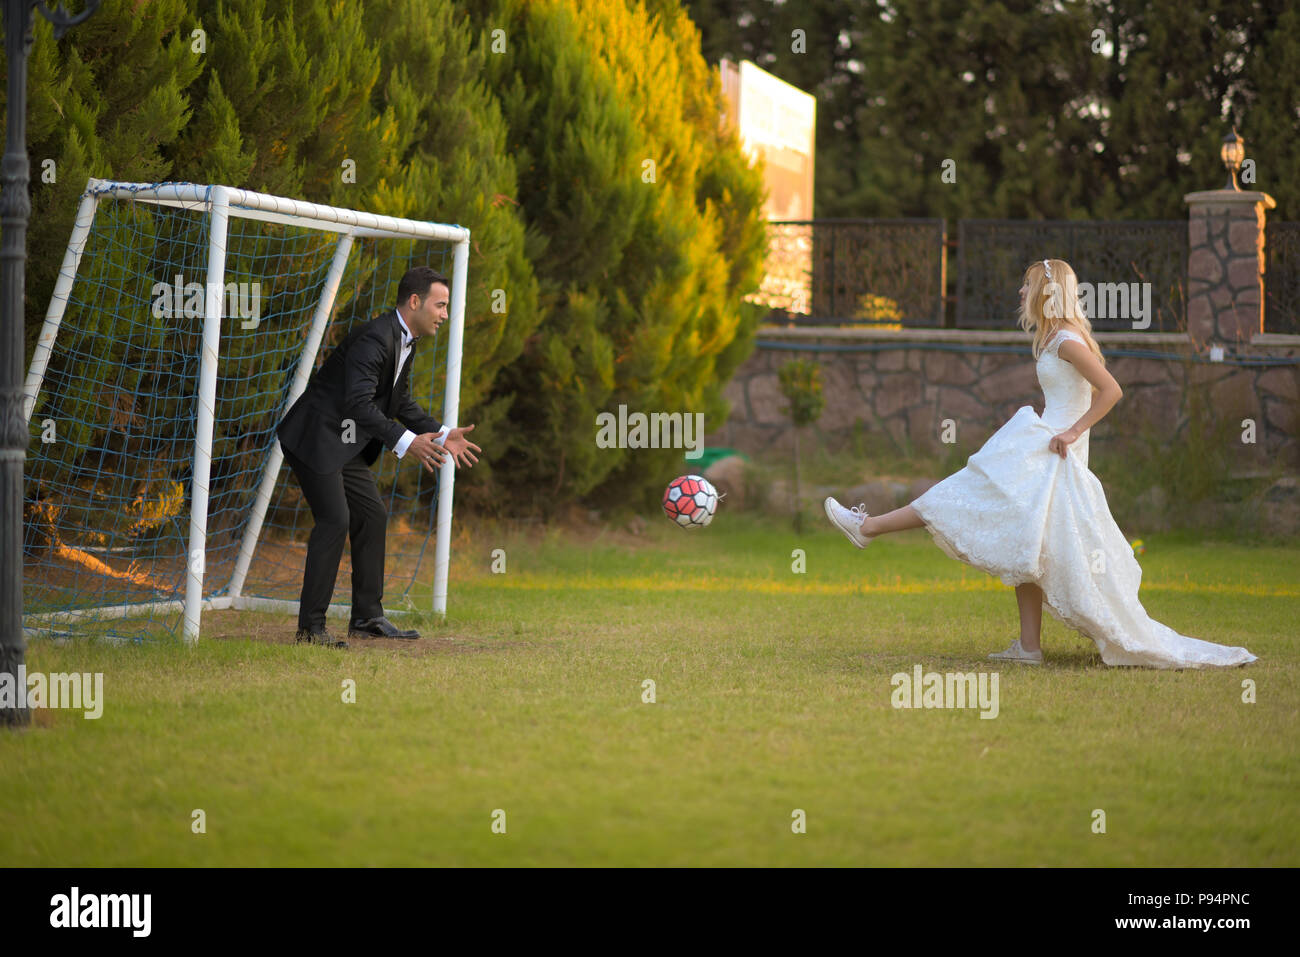 Wedding bride and groom playing football  soccer game bridegroom love marriage marrying couple - Stock Image